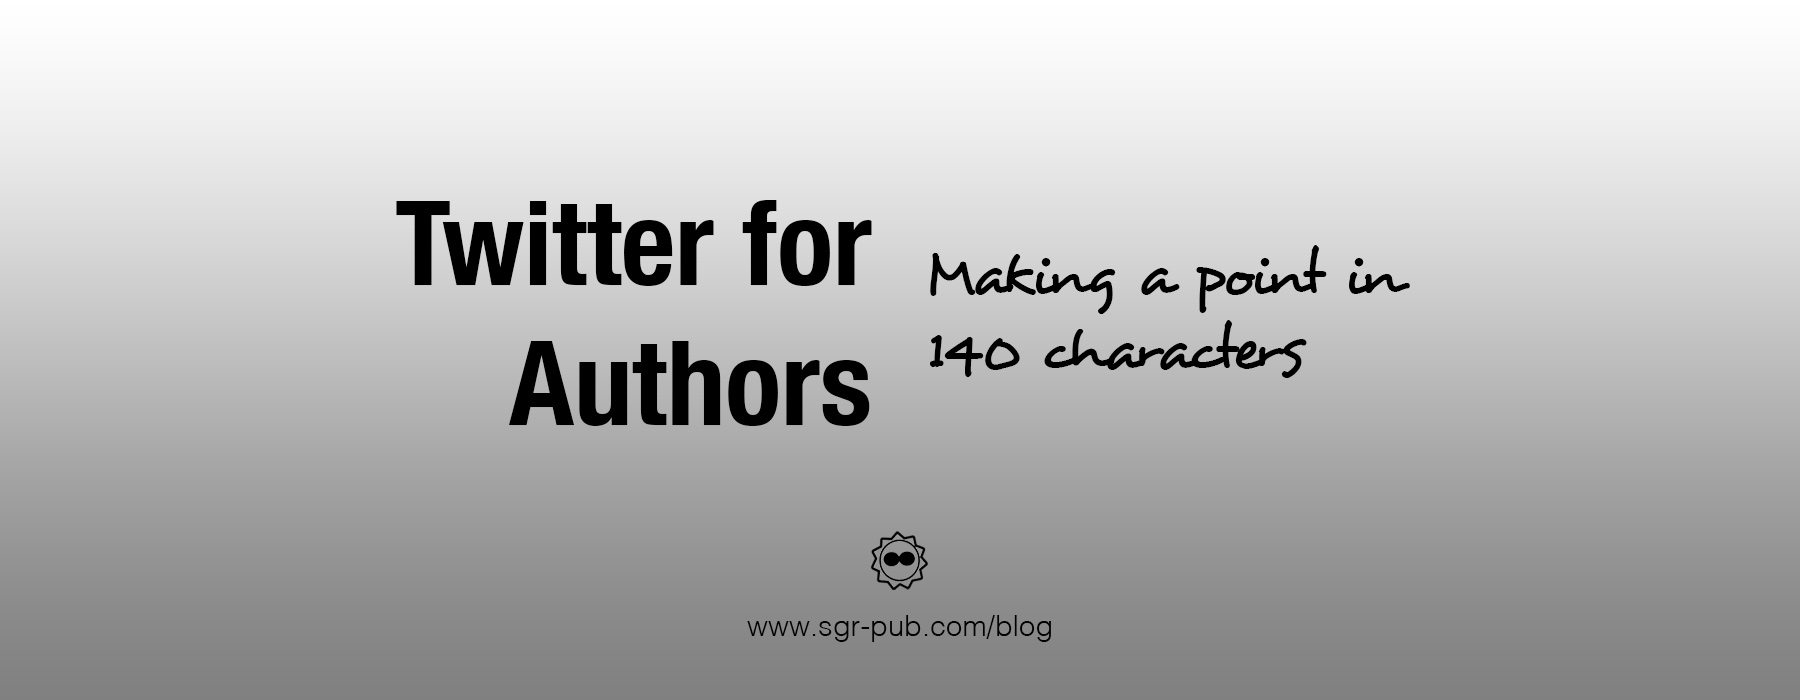 Twitter for Authors: Making a point in 140 characters